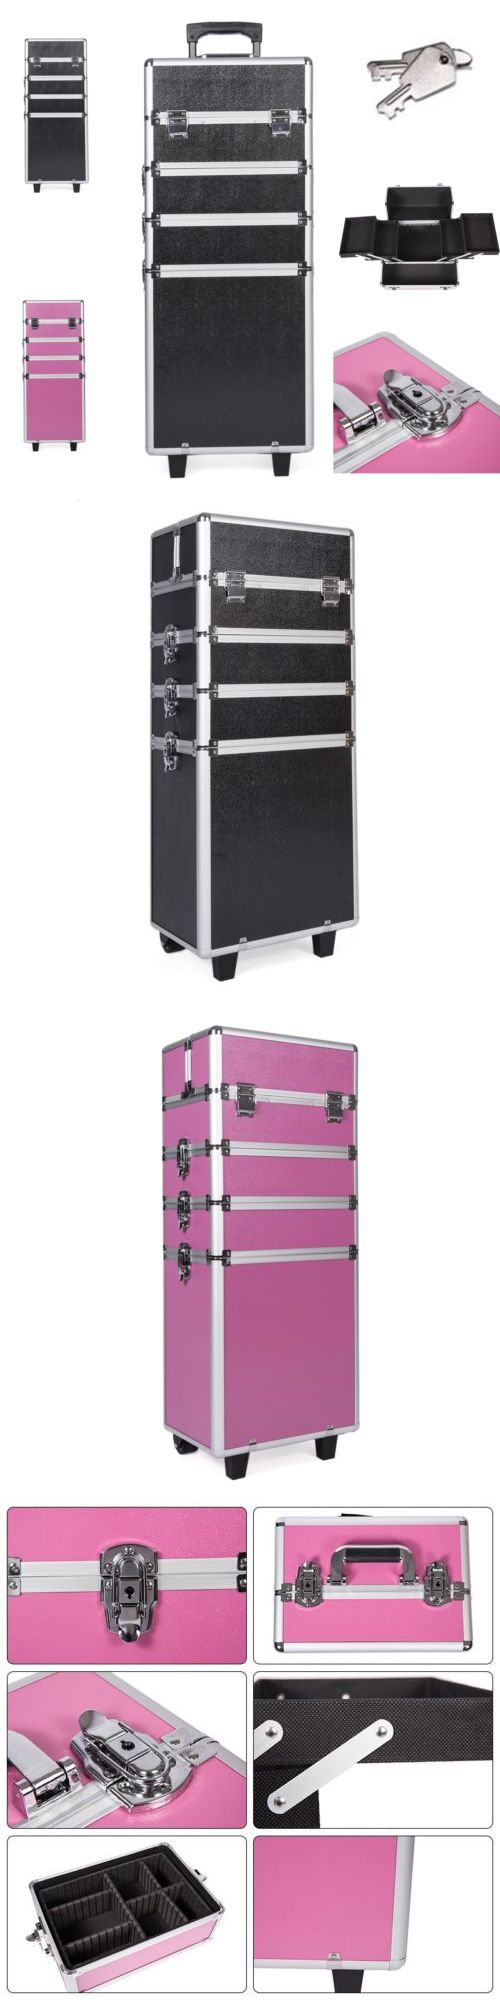 Rolling Makeup Cases: 4 In 1 Rolling Cosmetic Makeup Train Cases Trolley Beauty Artist Organizer Box -> BUY IT NOW ONLY: $79.89 on eBay!